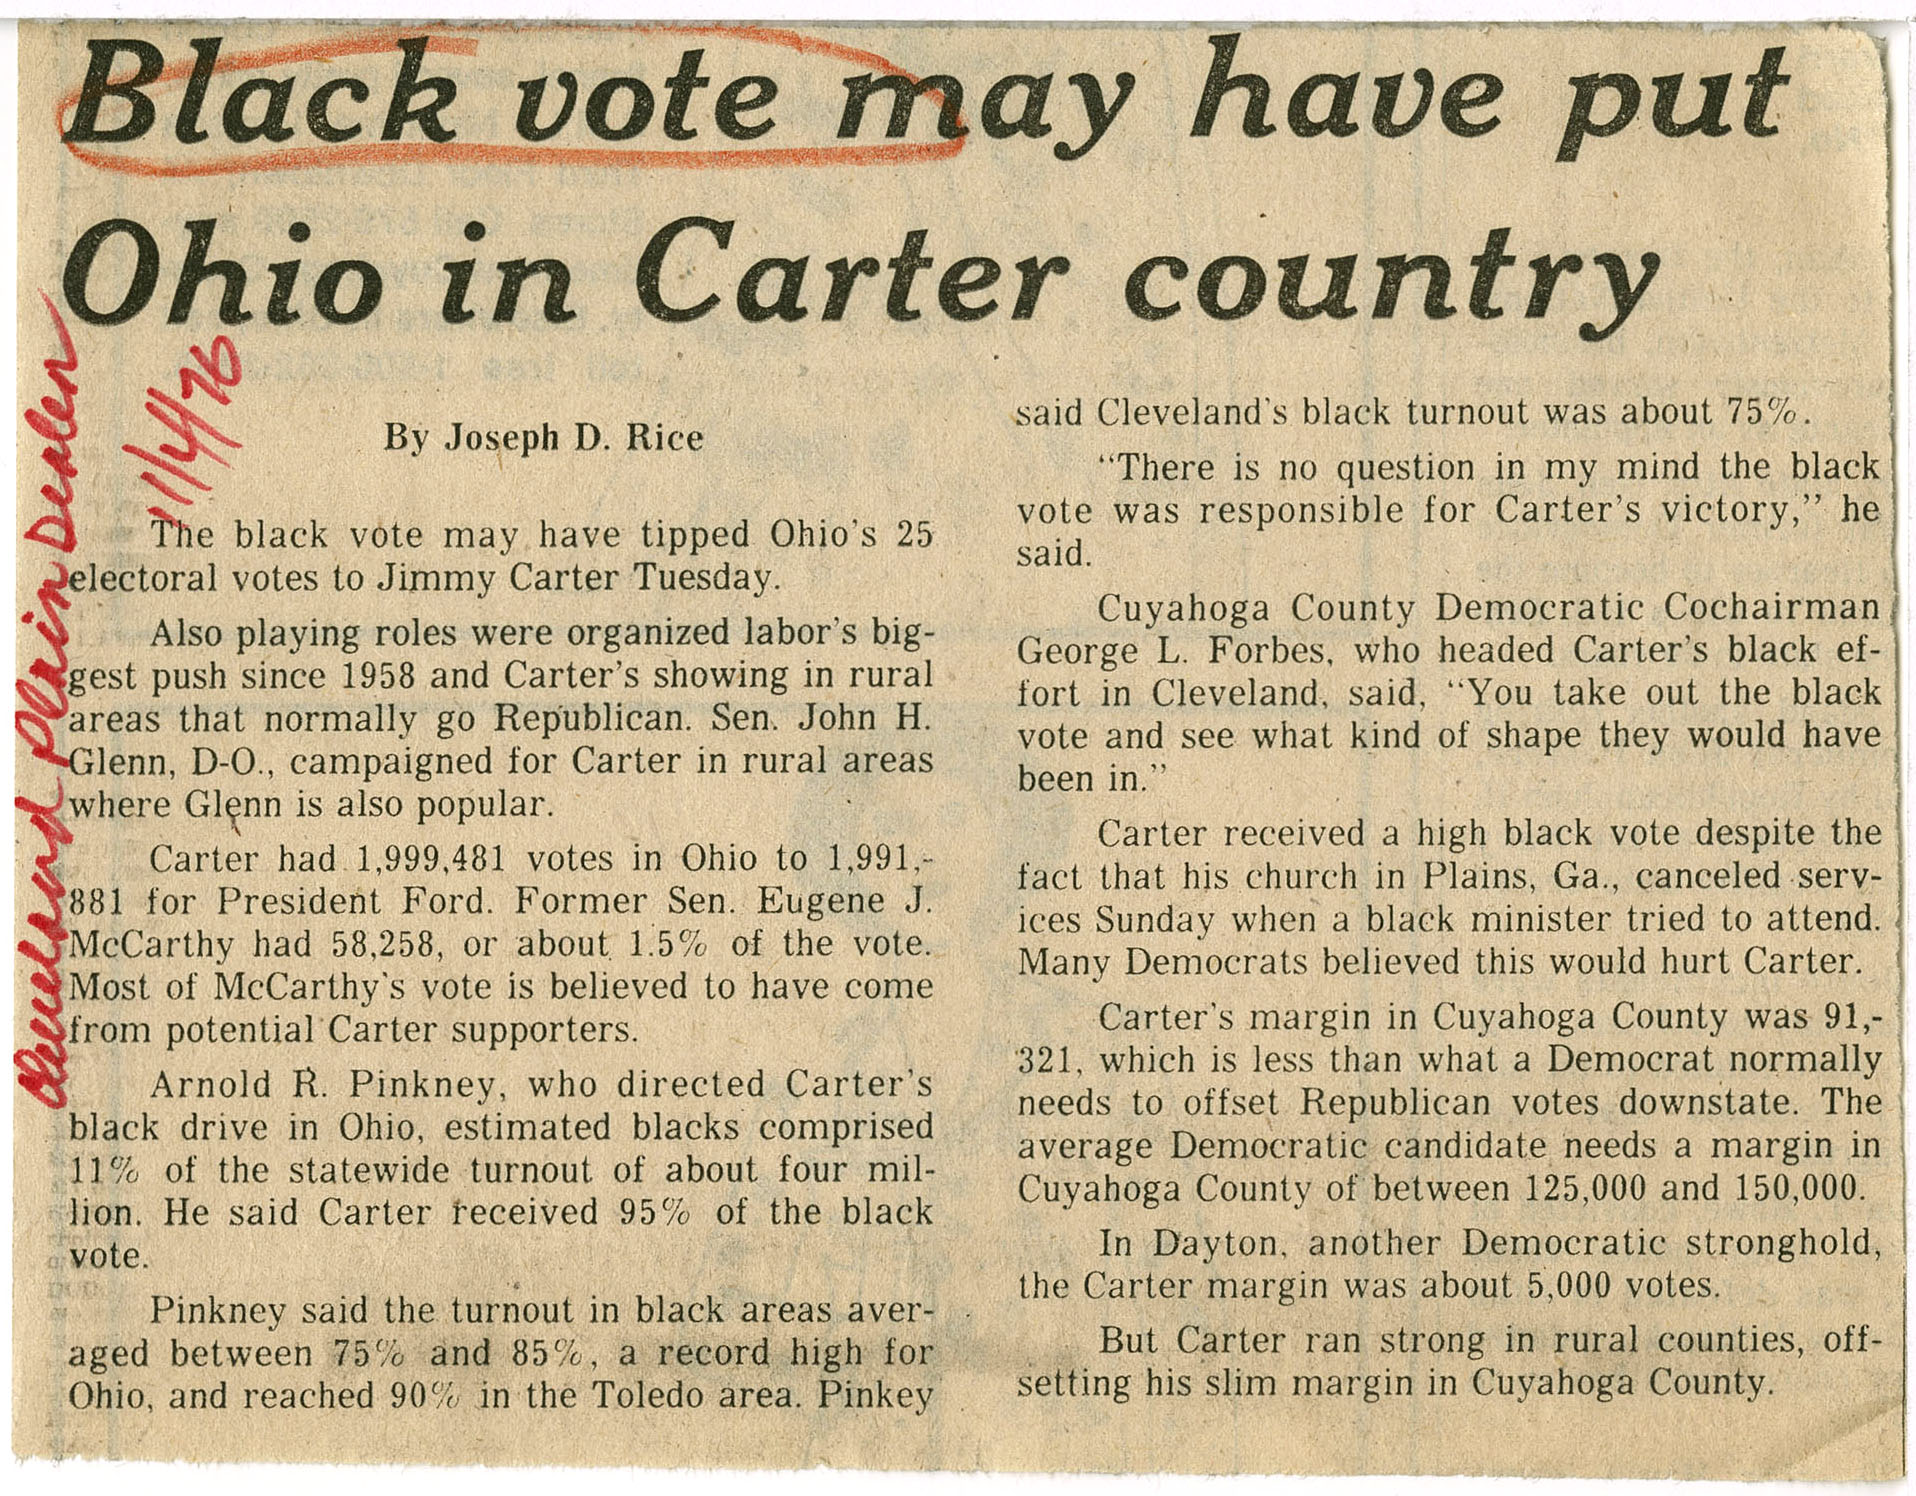 Black vote may have put Ohio in Carter country, Joseph D. Rice; Cleveland Plain Dealer, 1976 November 4, bJohnson Publishing Company Clippings File Collection